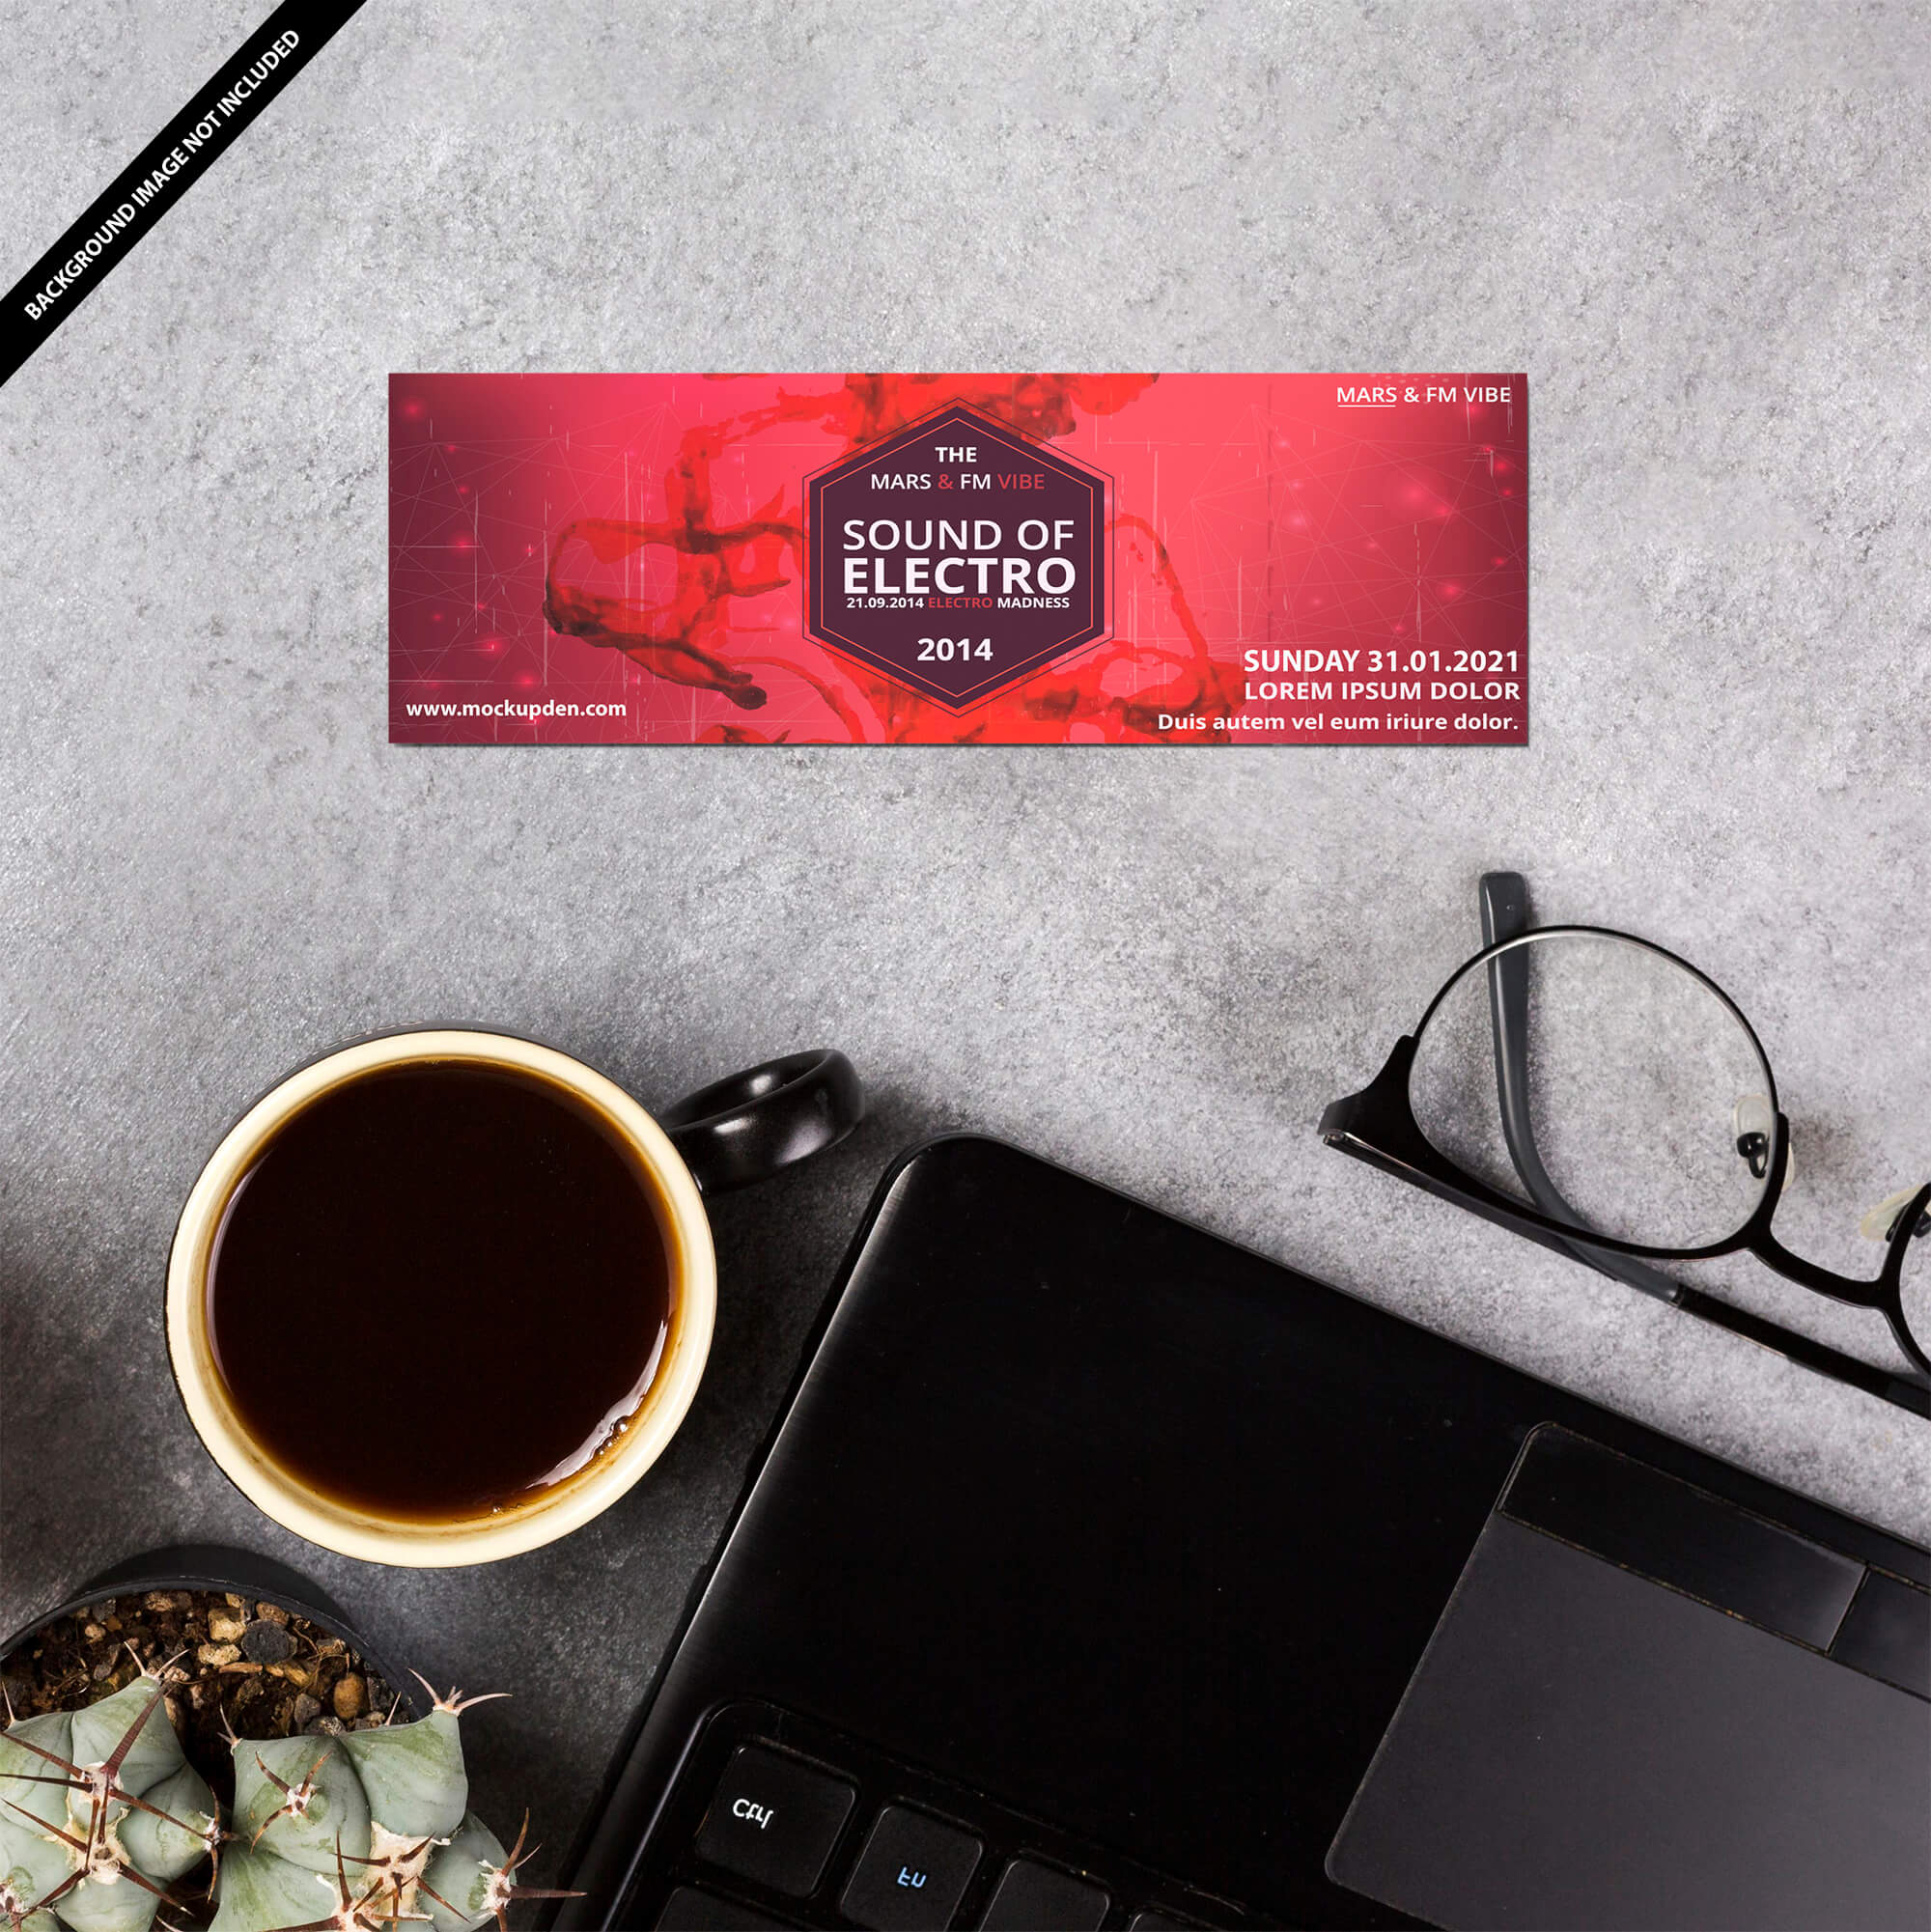 Free Season Ticket Mockup PSD Template